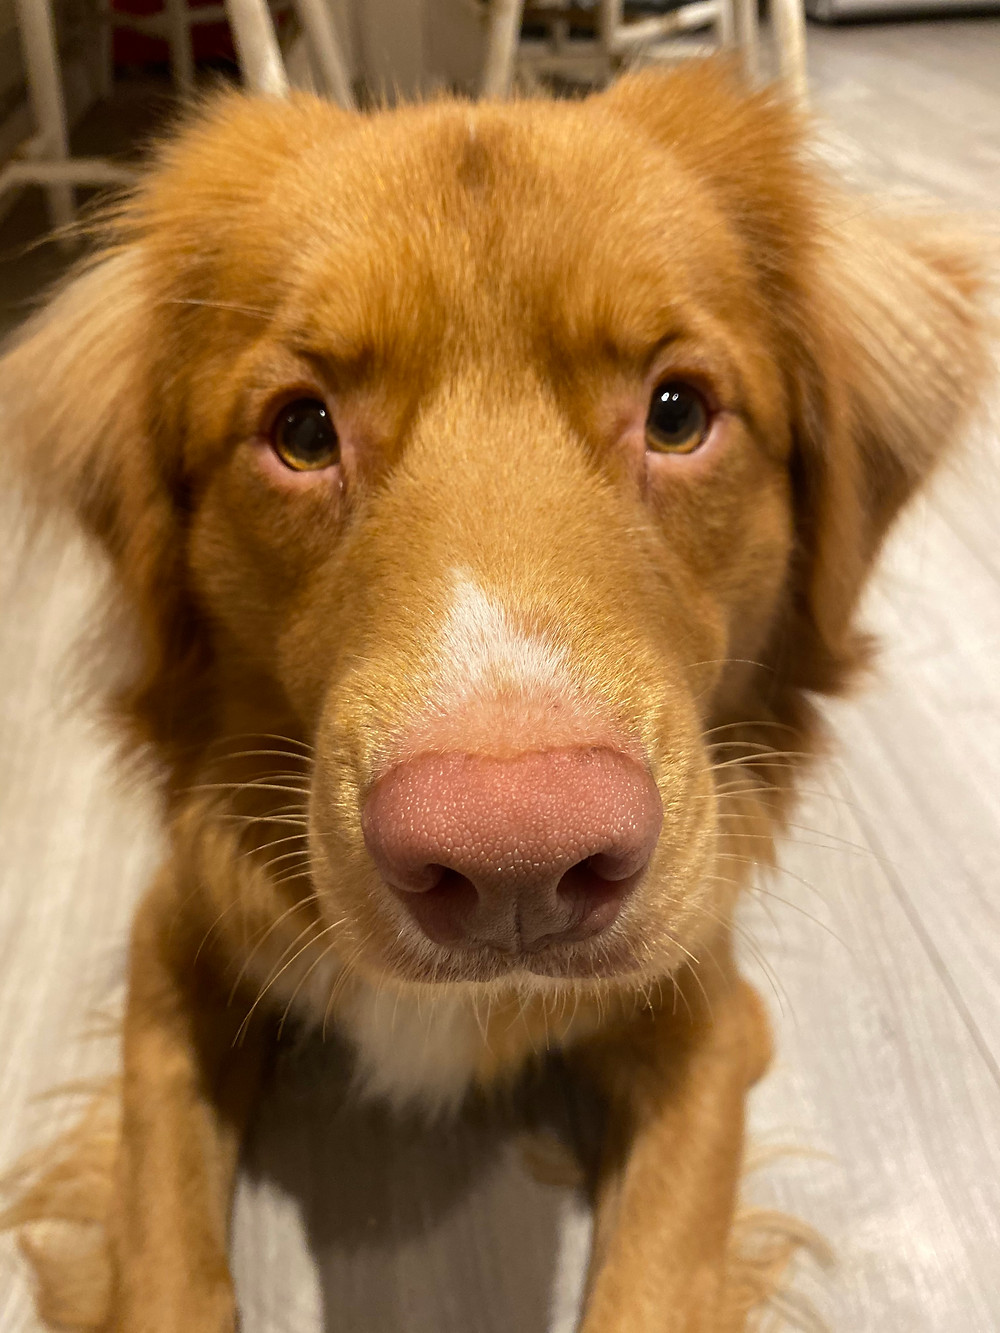 A close up of Taylor the Nova Scotia Duck Tolling Retriever, a medium-sized long-haired red and white dog breed